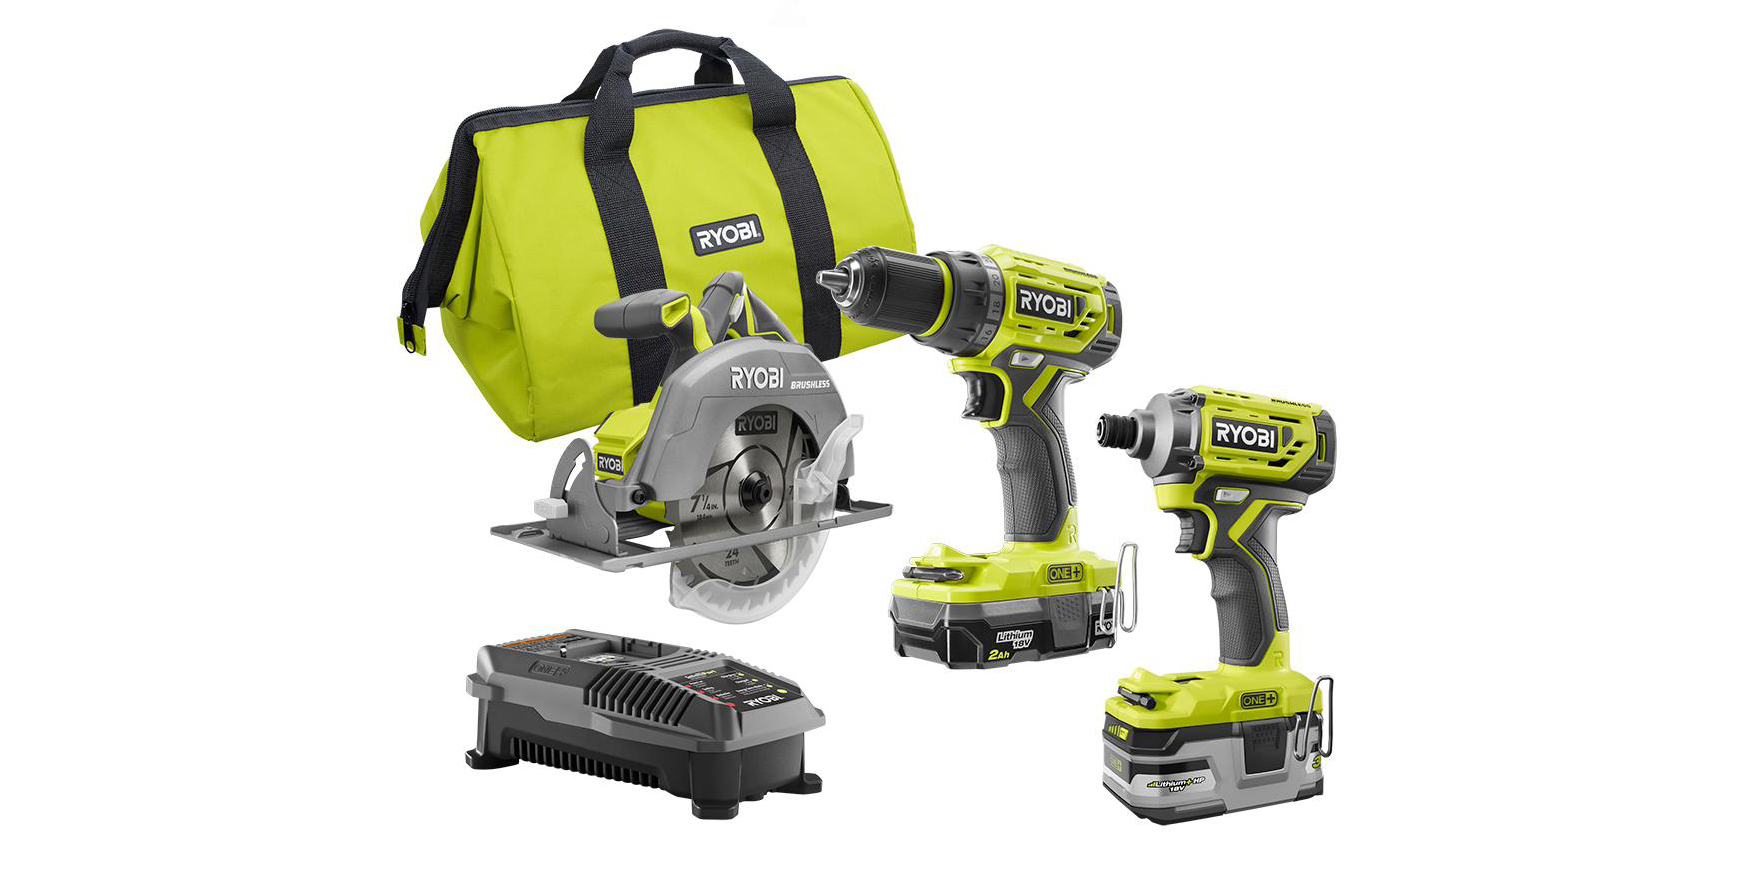 DIYers and weekend warriors should pick up this 3-tool Ryobi bundle for $179 (Reg. $250)